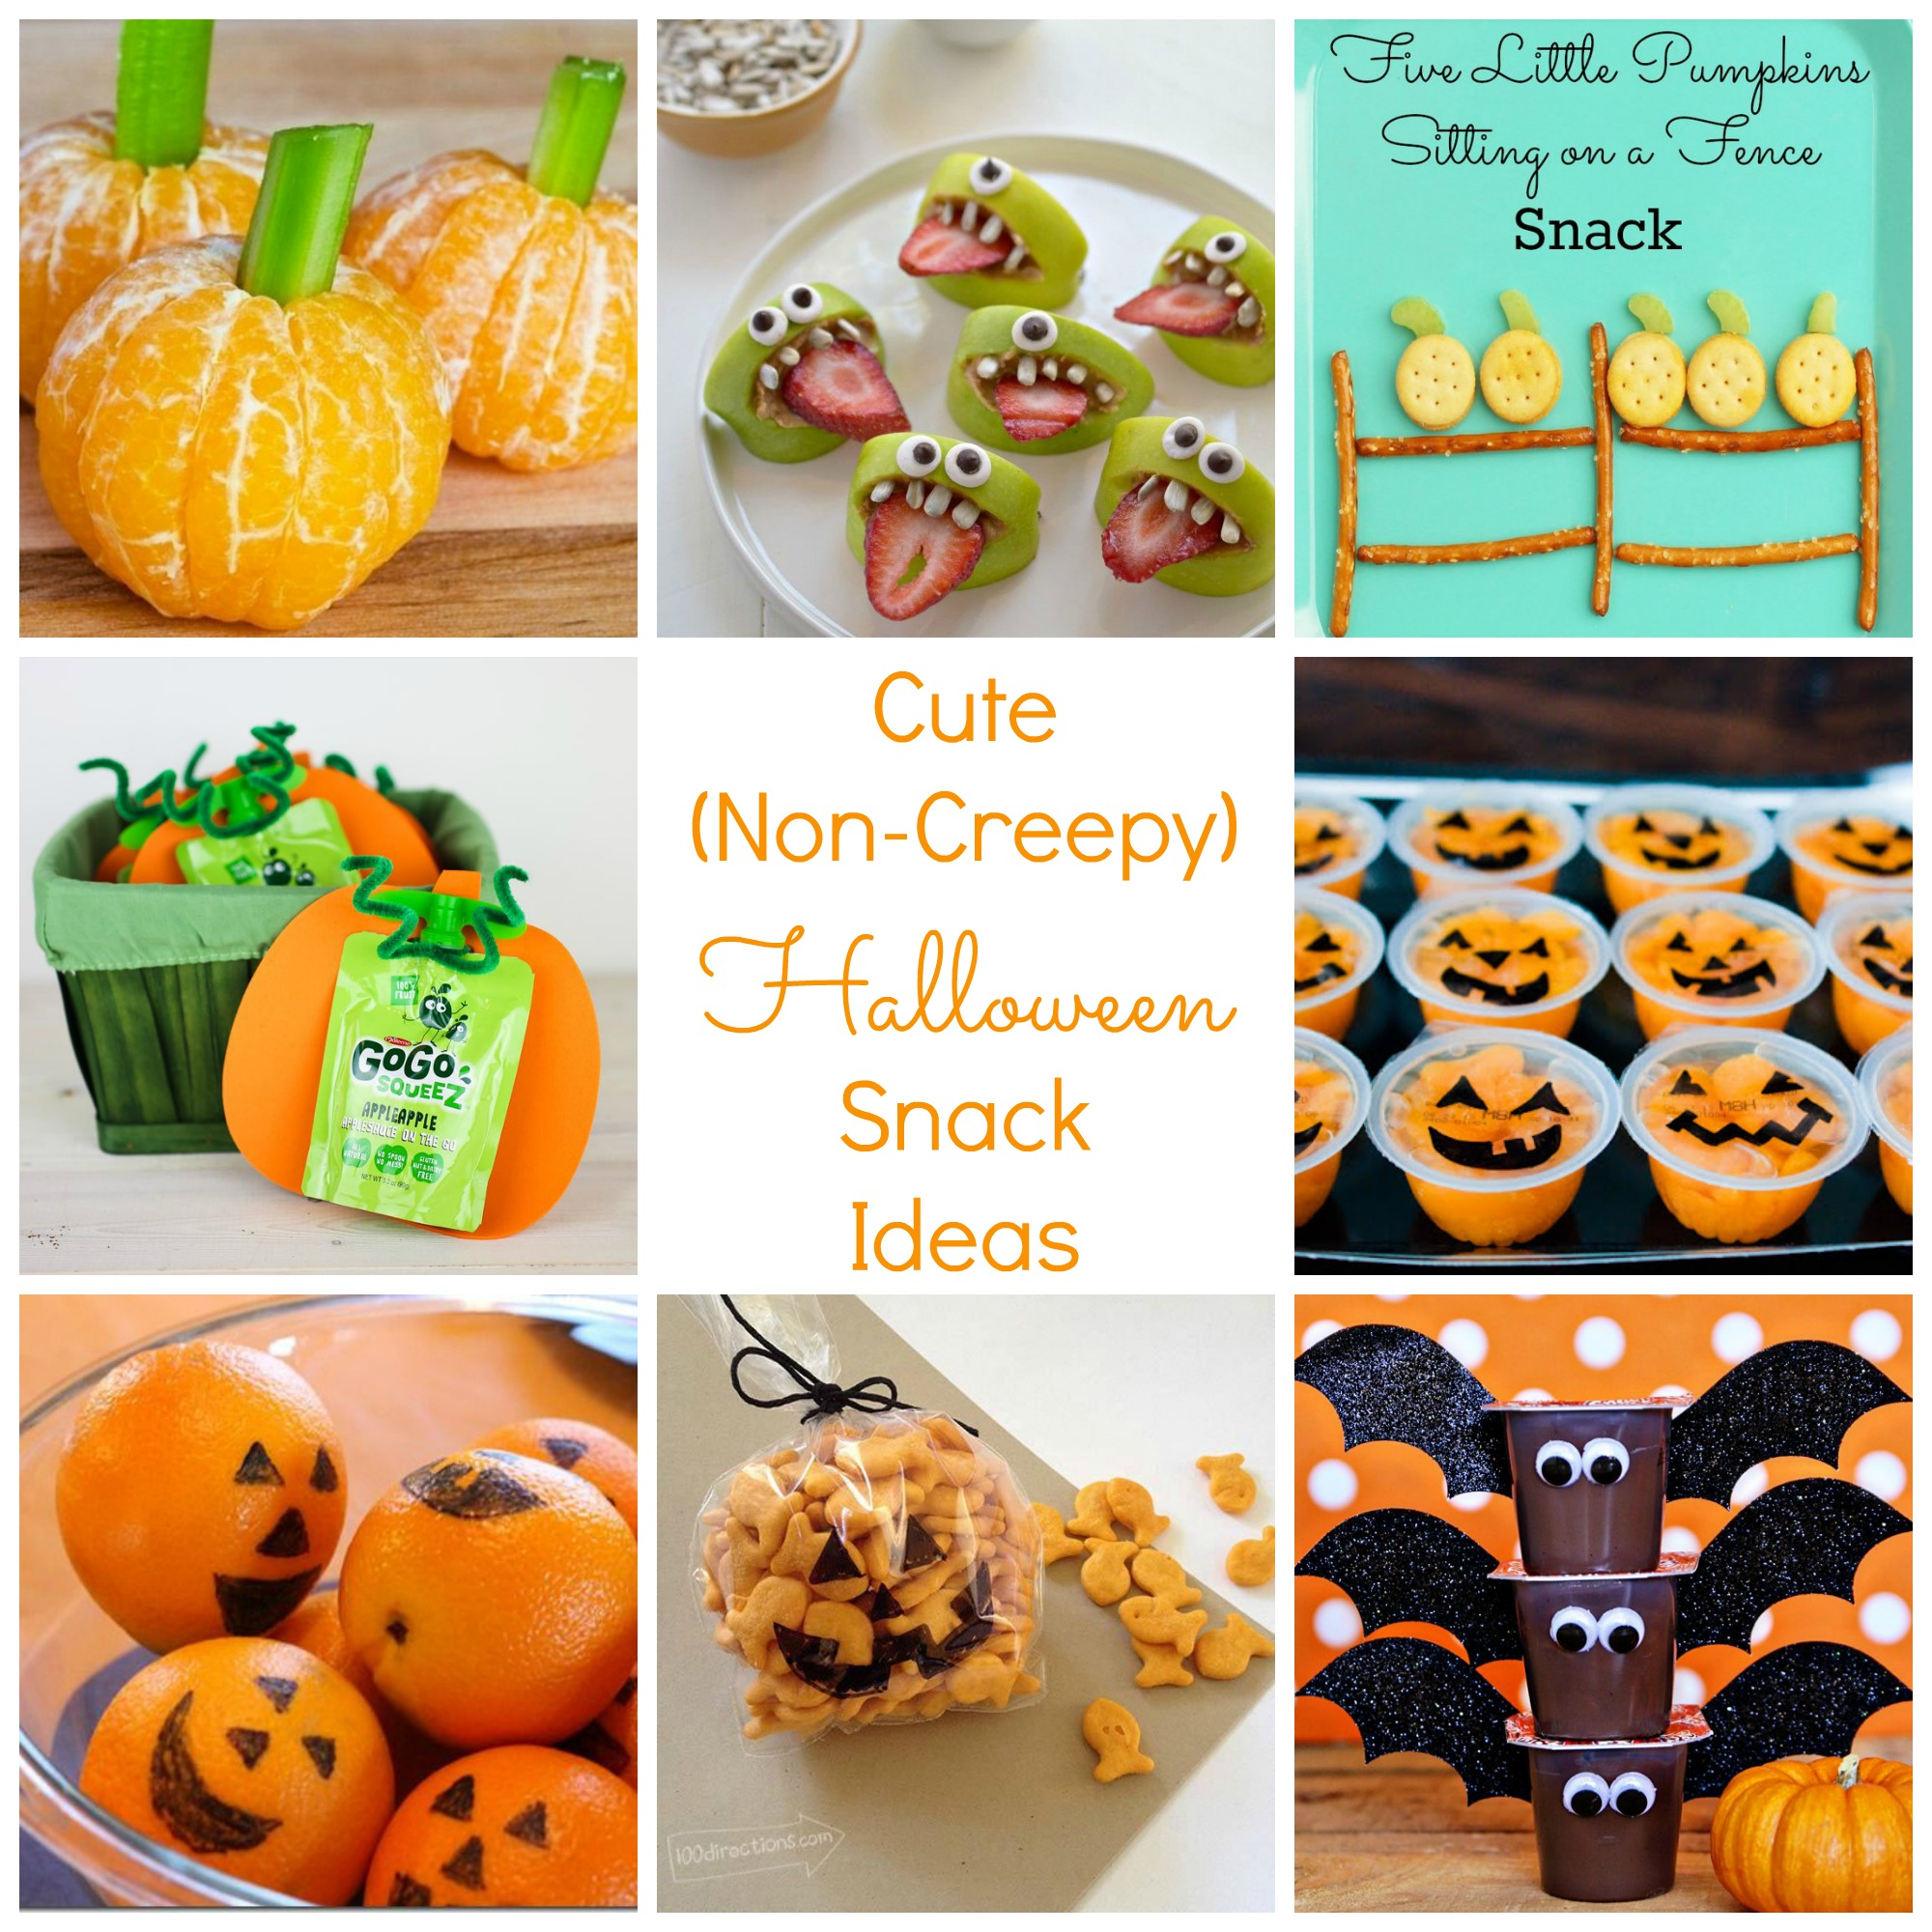 Cute NonCreepy Halloween and Fall Snack Ideas Happy Home Fairy